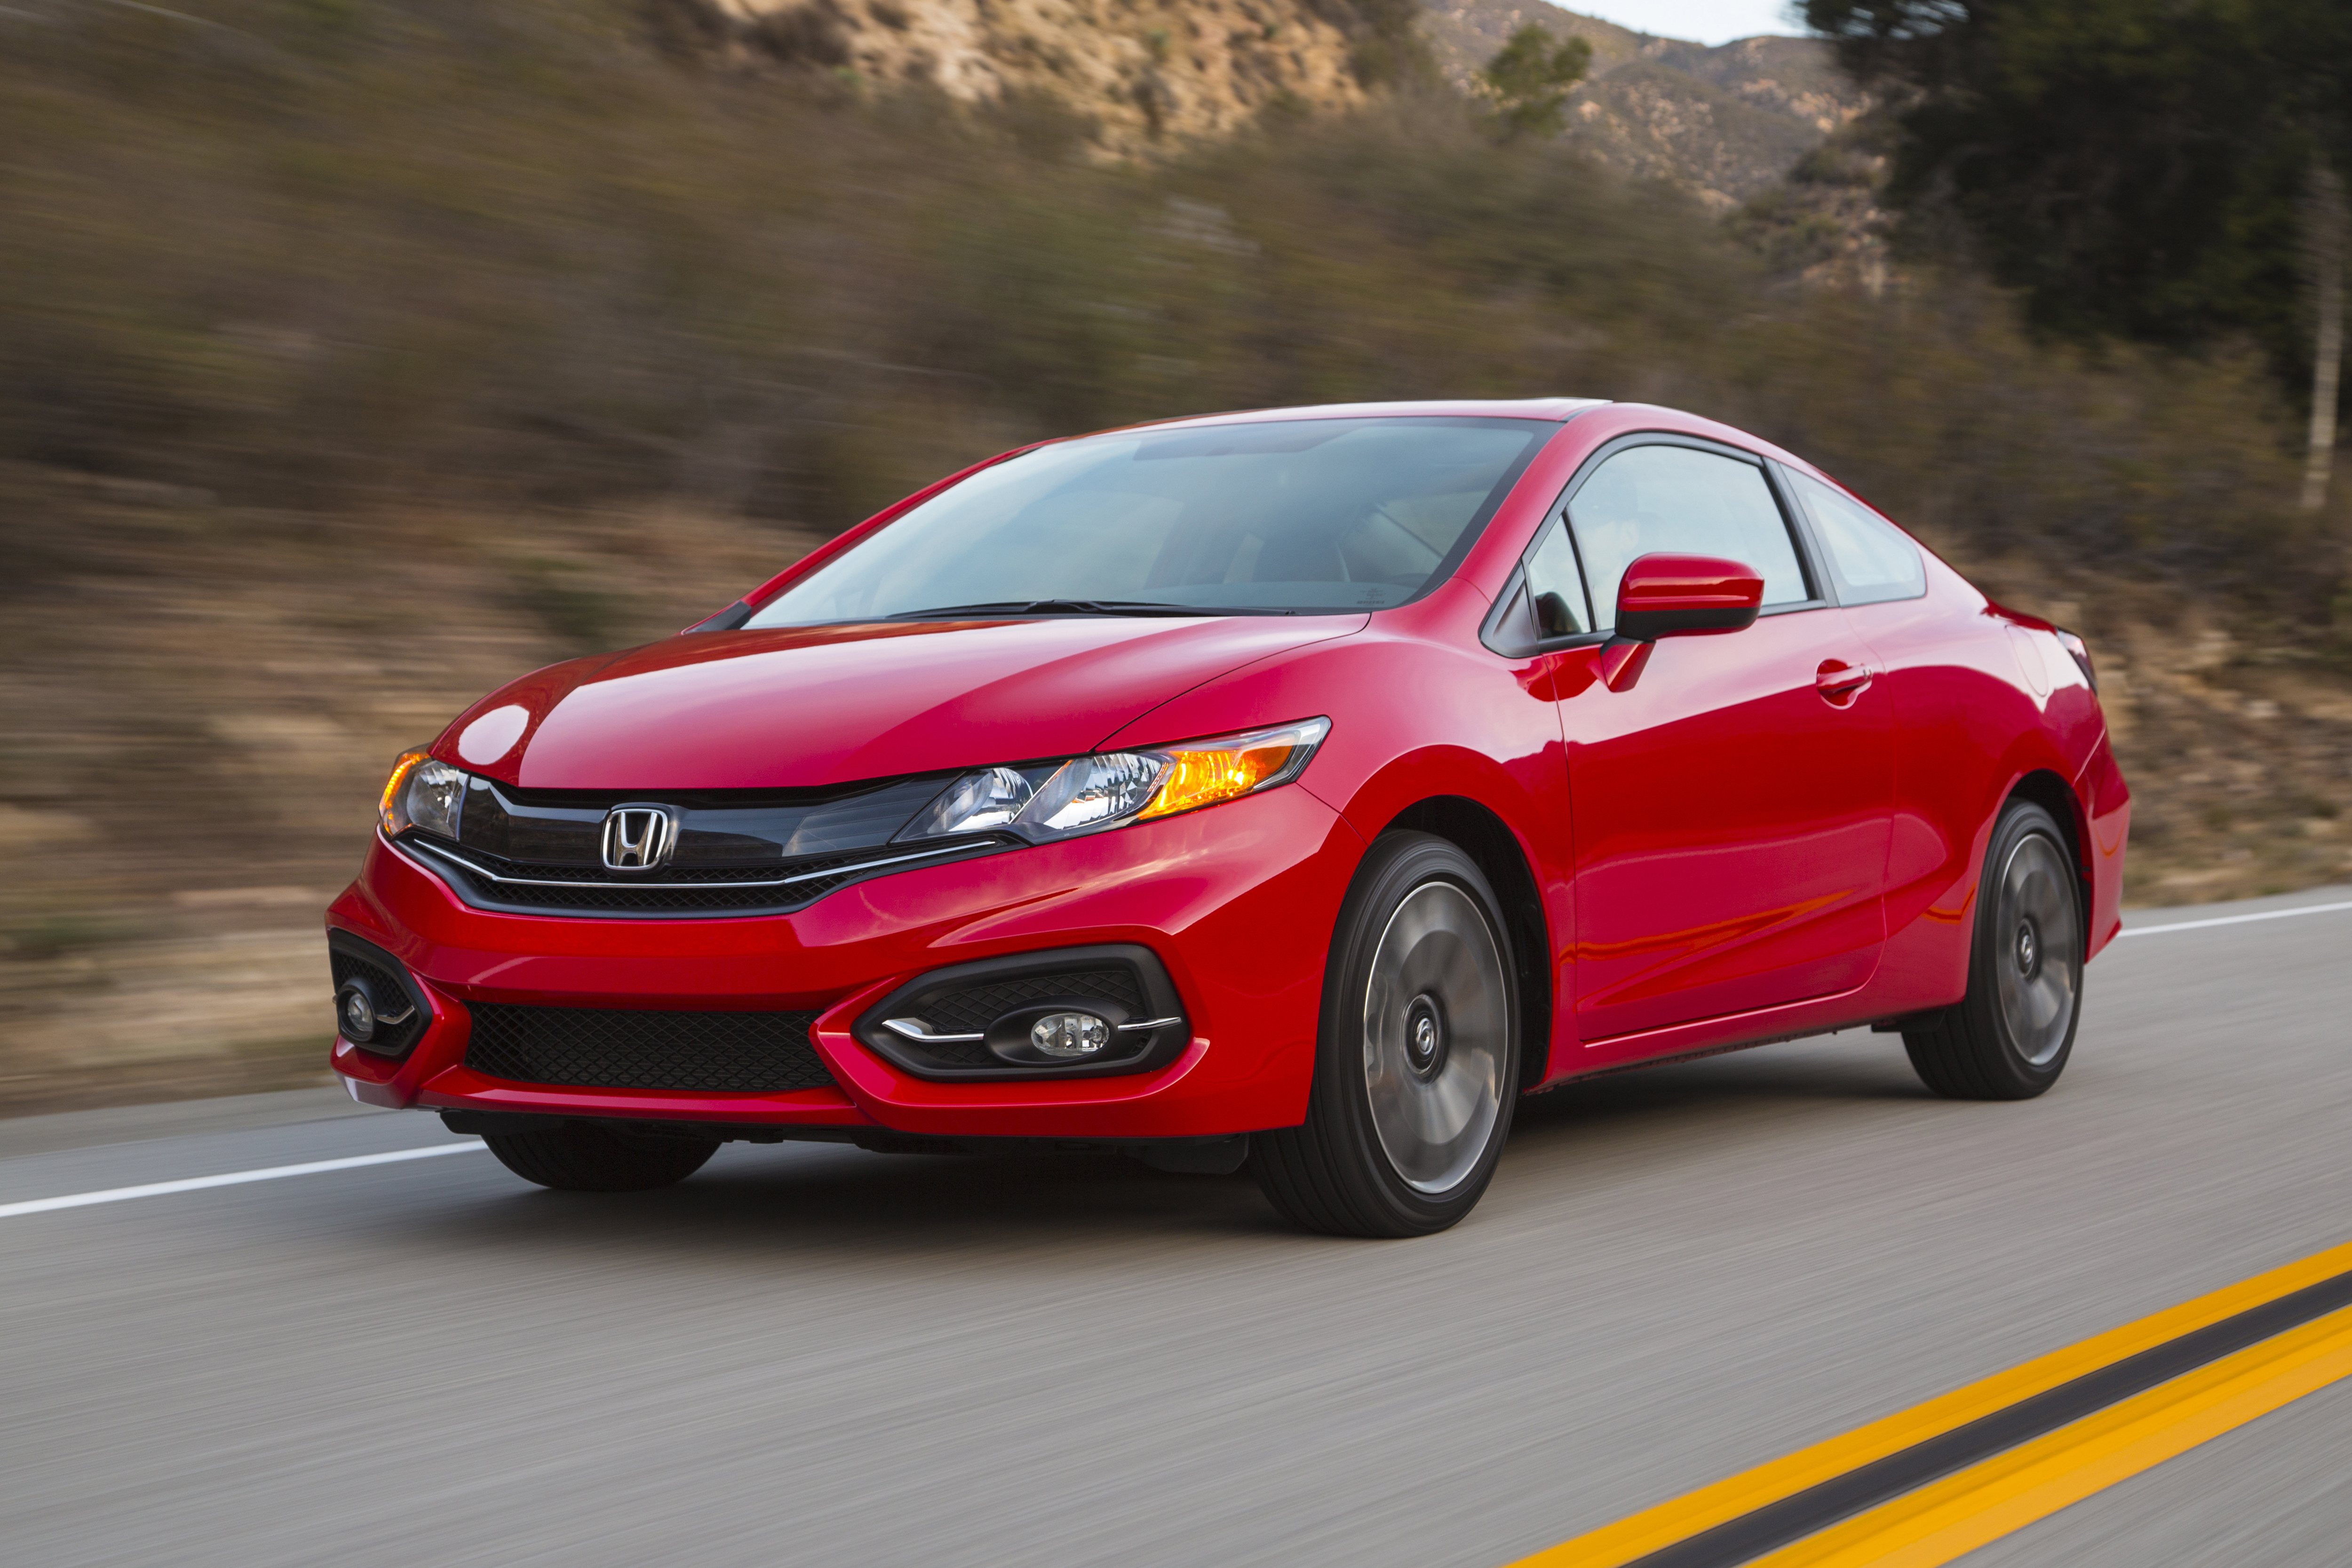 The Road Travelled History Of Honda Civic News 1970 Cvcc Global Recession Hit Auto Industry Hard And At It Caused A Major Re Think As To What Future Economy Car Customers Would Want In Vehicle